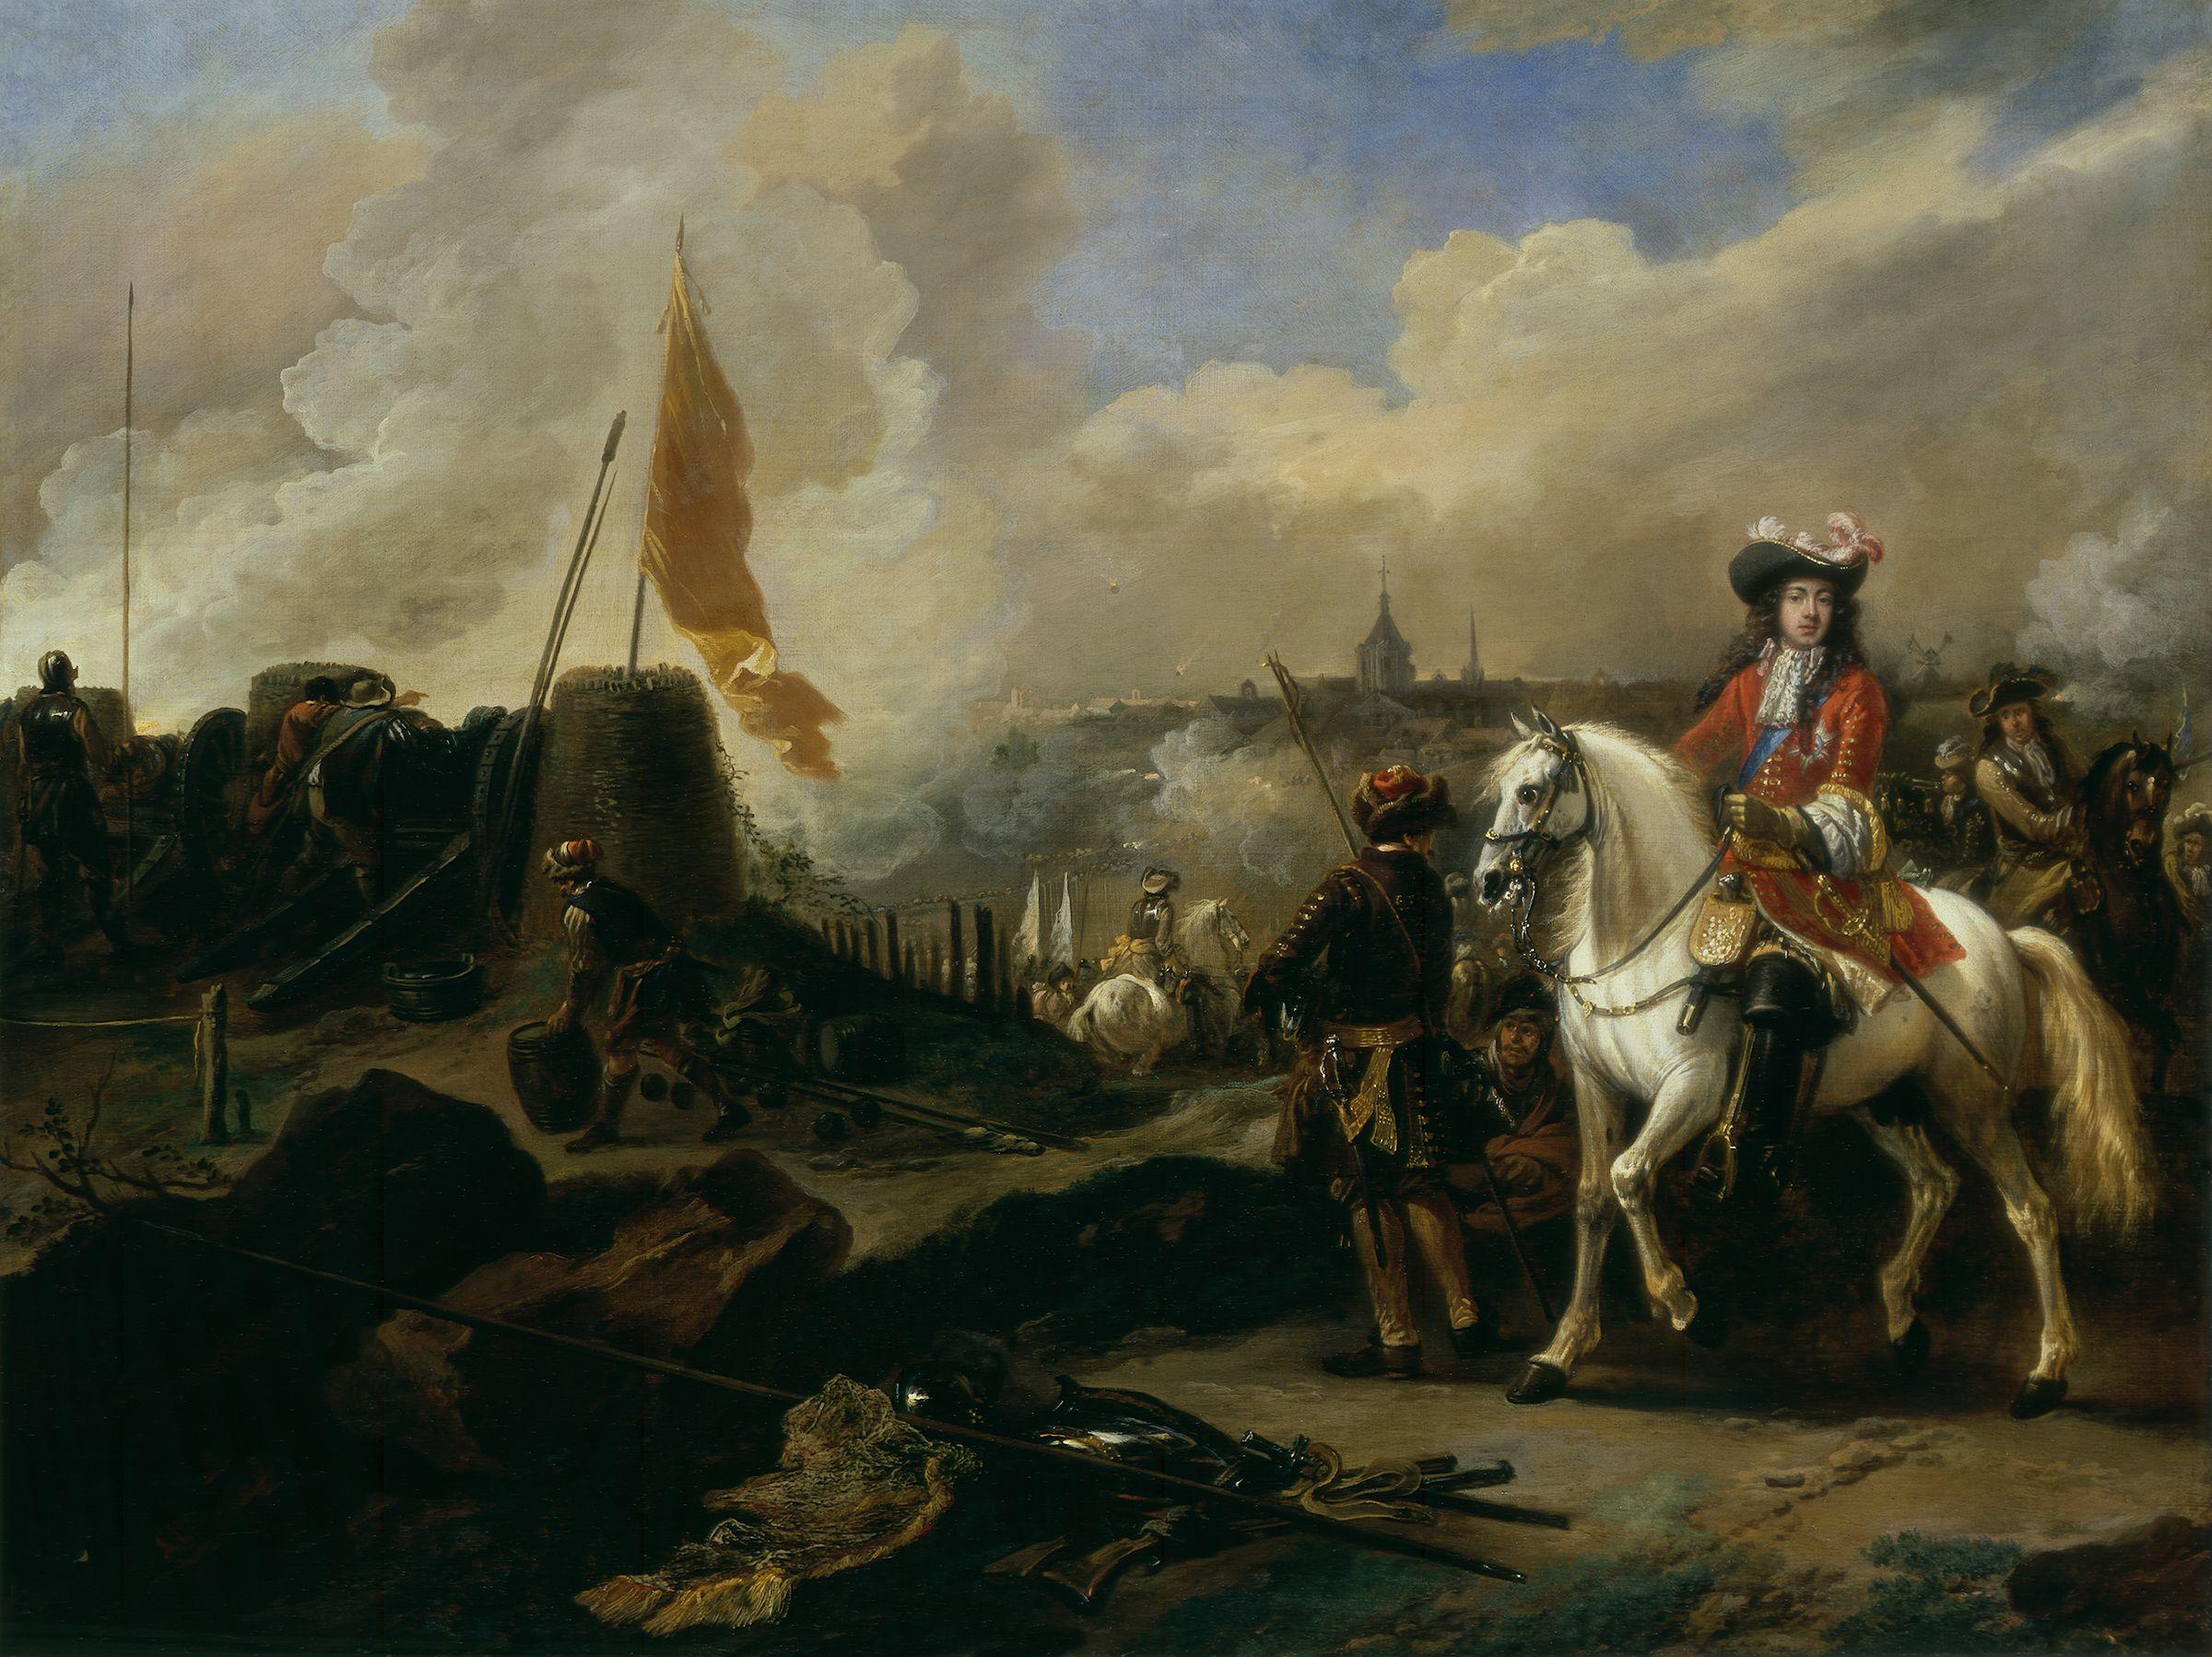 James Scott, Duke of Monmouth and Buccleuch by Jan van Wyck.jpg